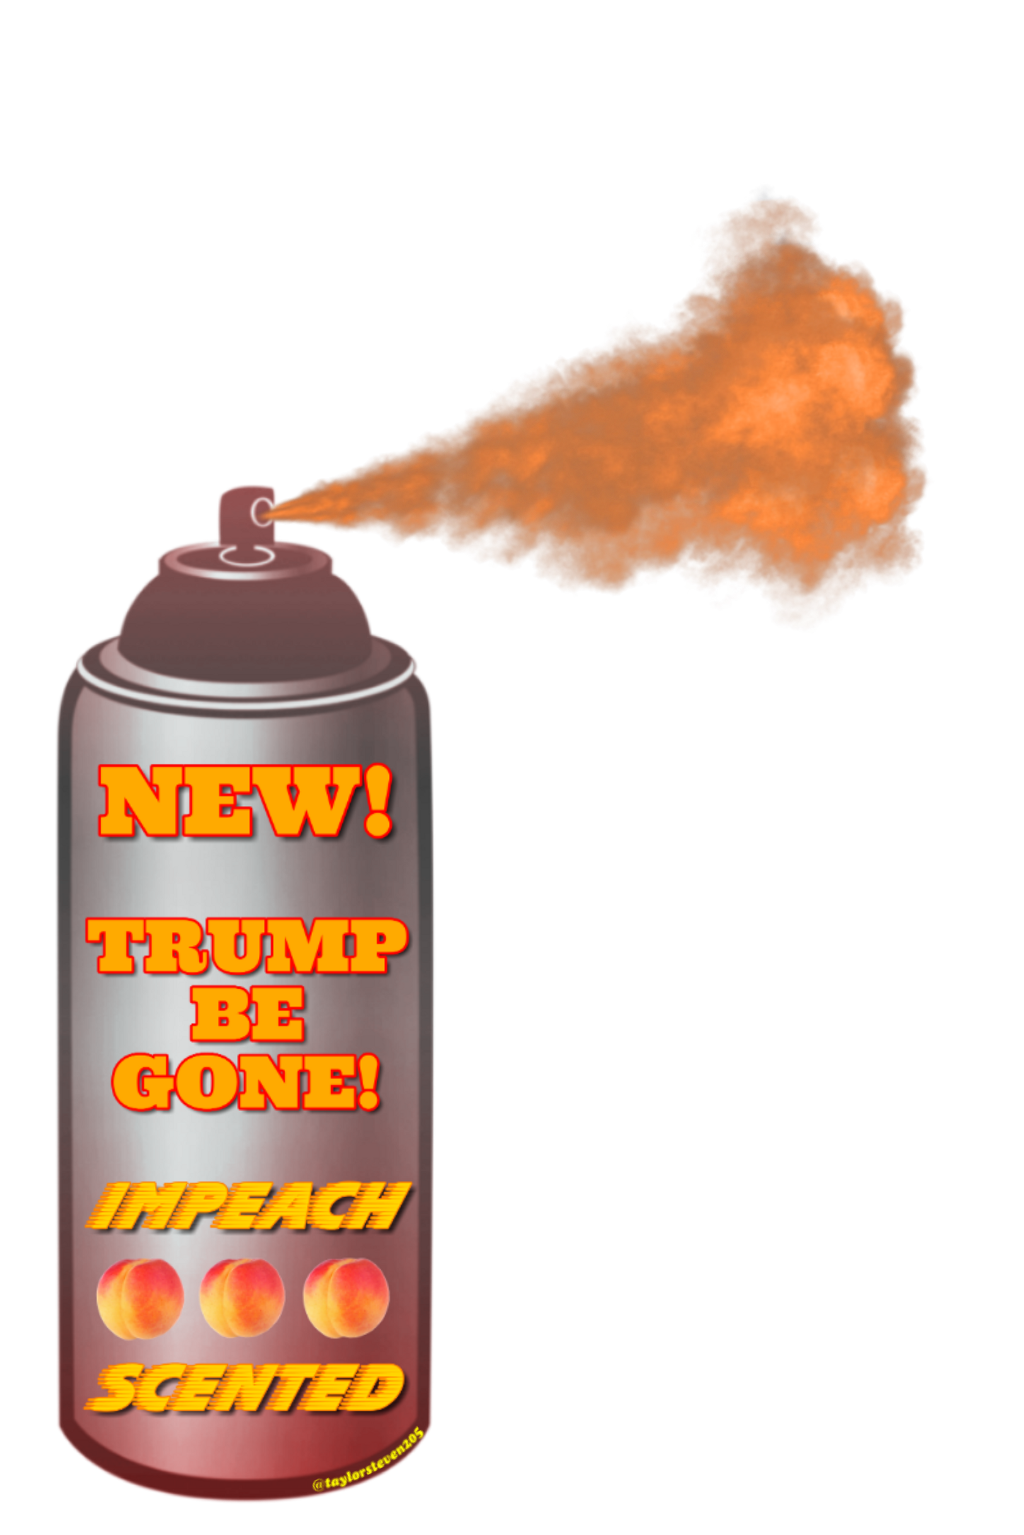 Thanks goes out to @gracewitchel for the inspiration!  #trumpbegone #remixthis #trump #donald #president #impeachtrump #billionaire #spray #spraycan #peach #impeachscented #impeach #sticker #stickers #origftestickers #ftestickers #communitystickers #autocollants #freetoedit